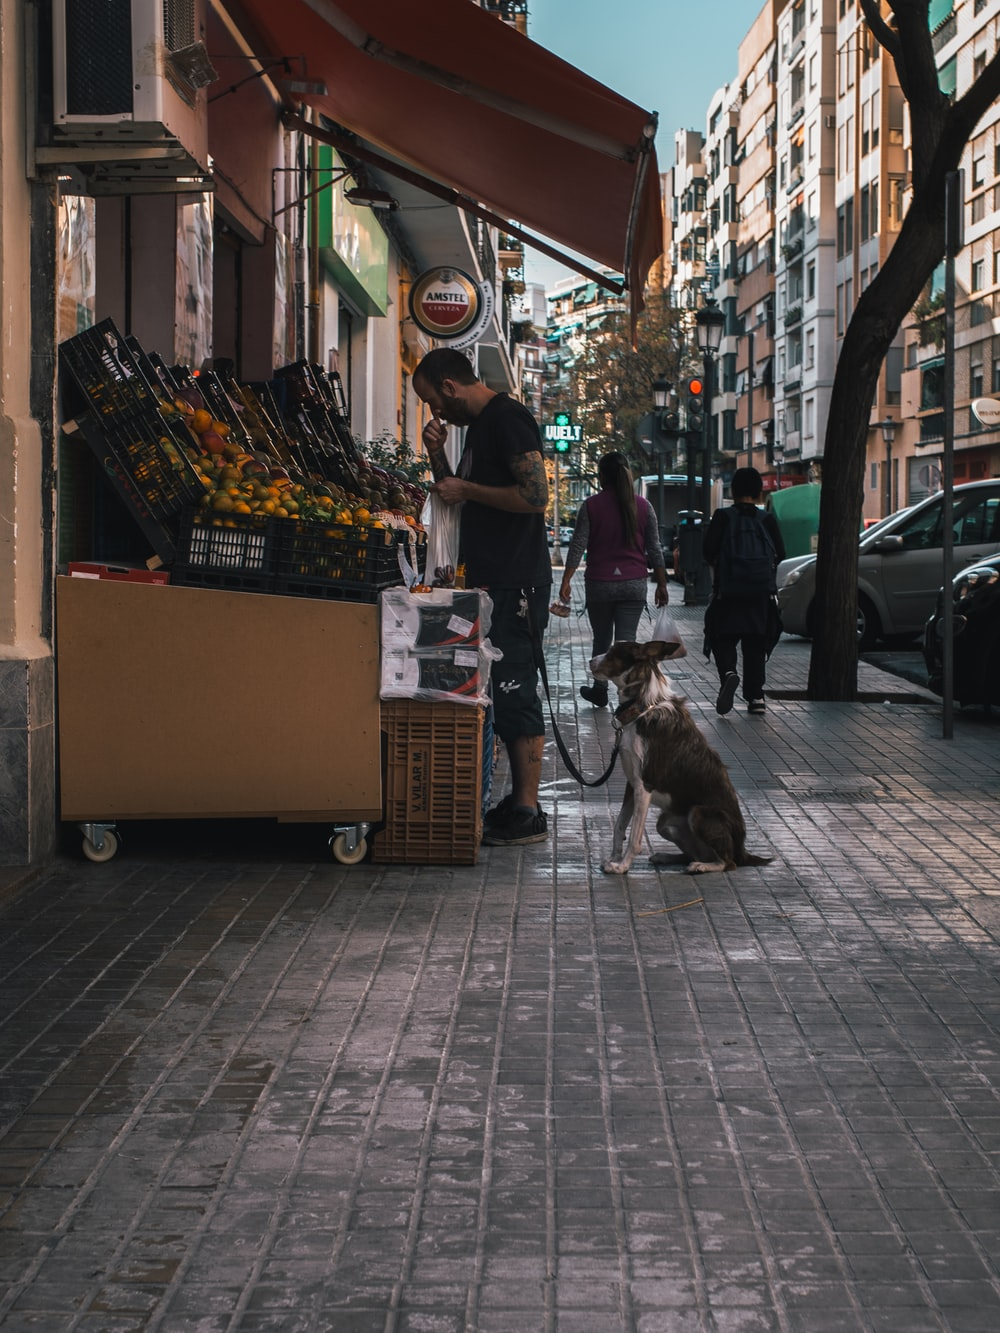 man and a dog at a kiosk